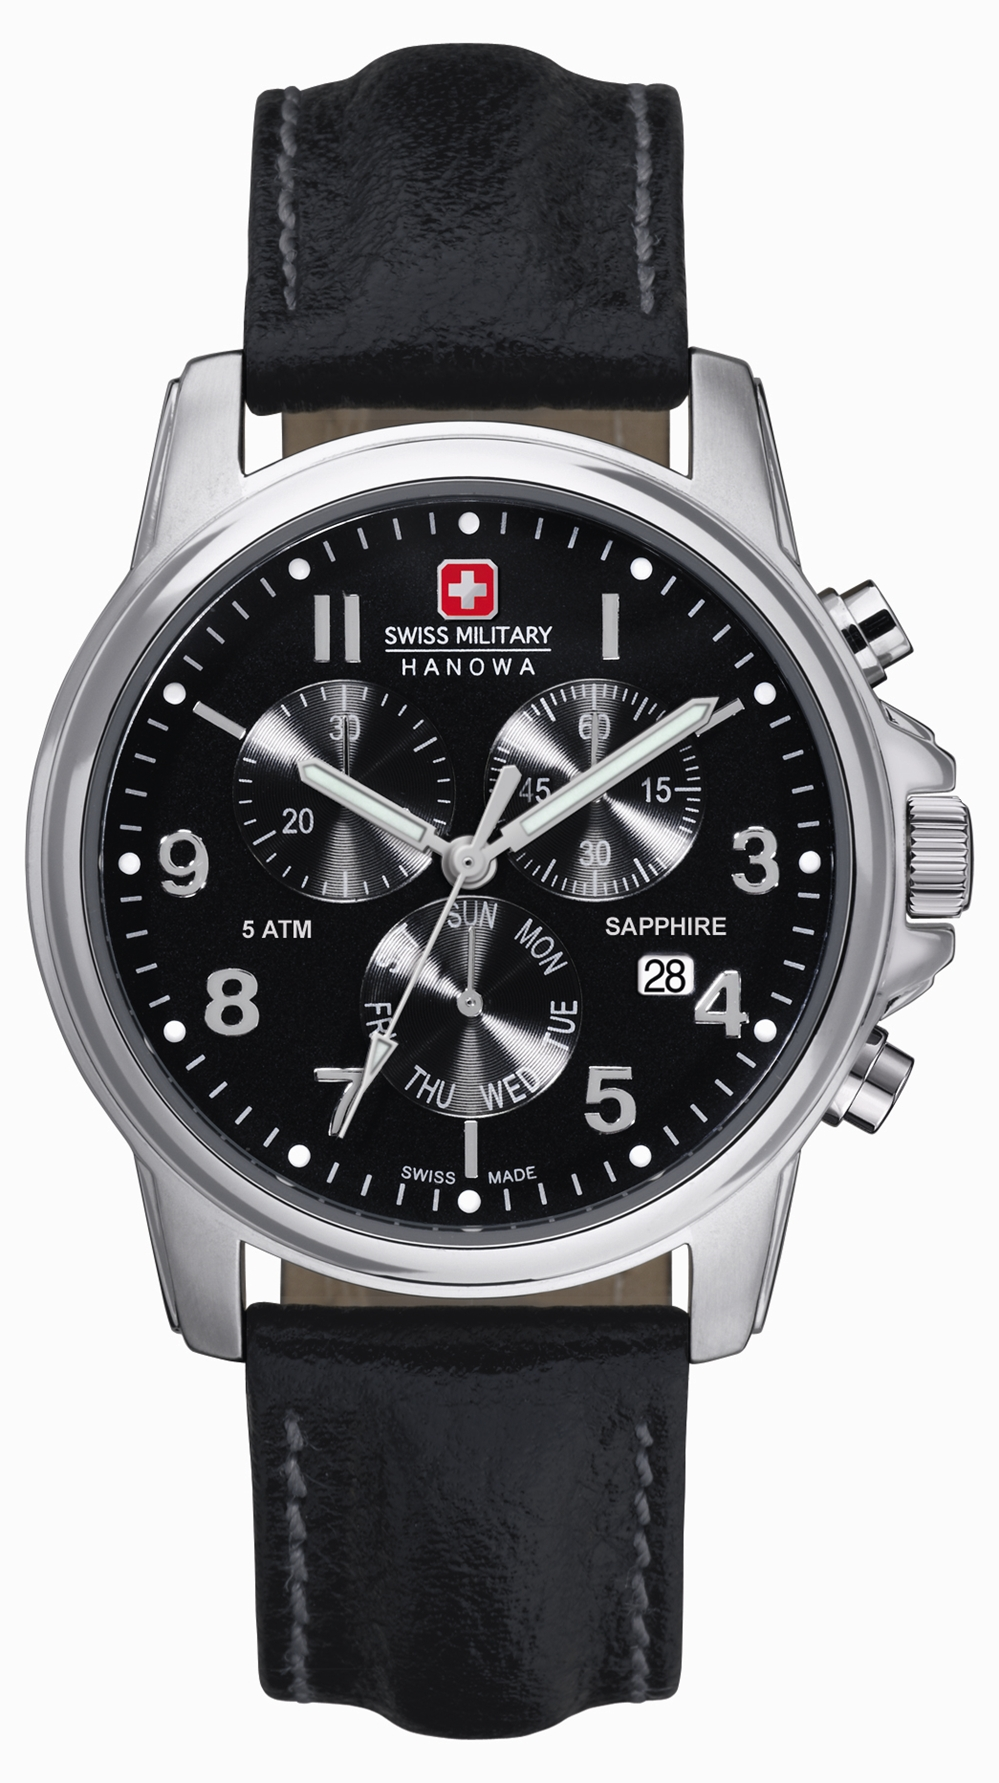 Swiss Army Hanowa